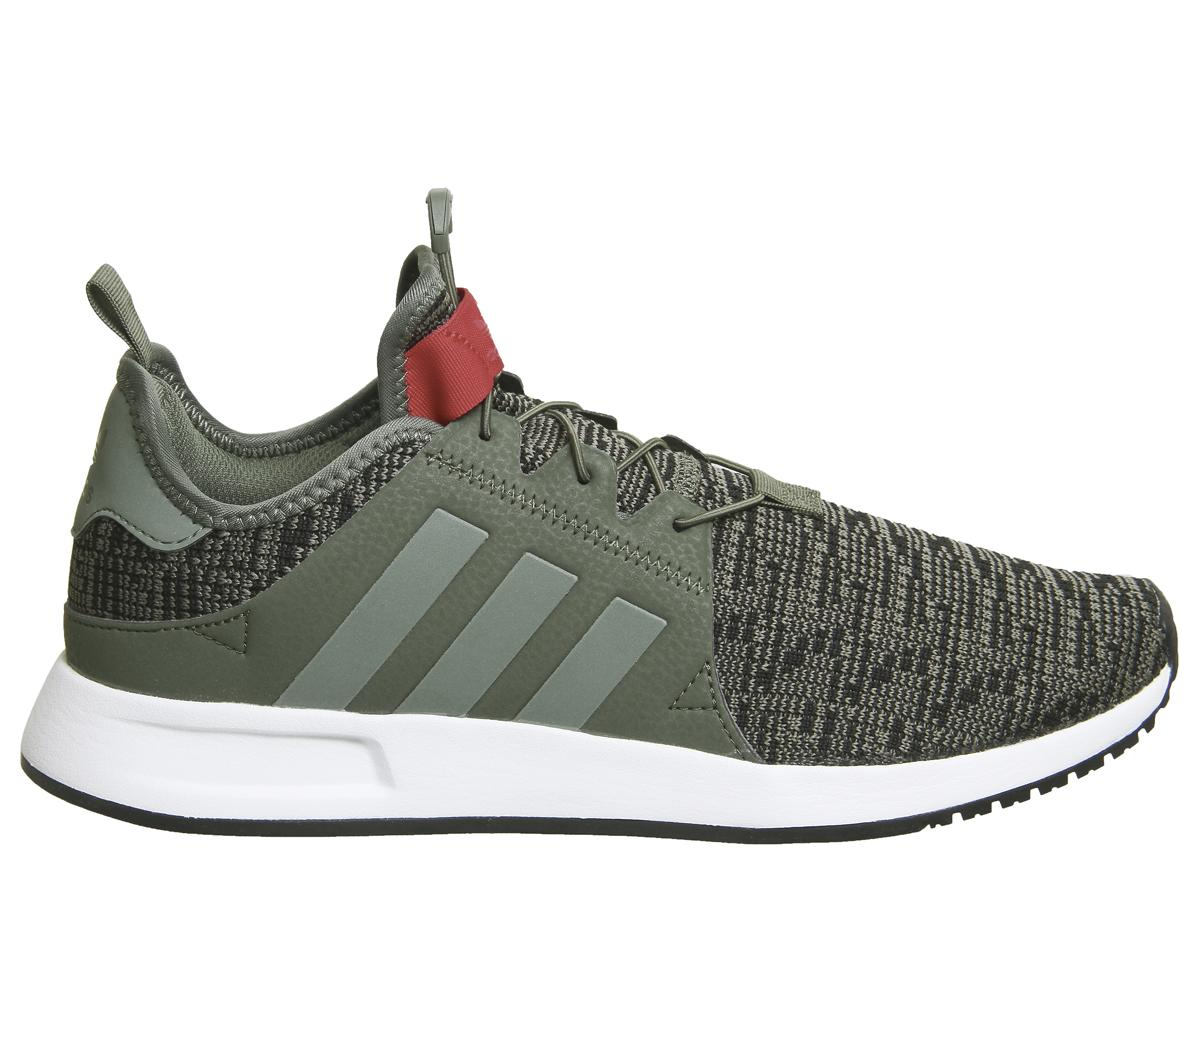 adidas Rubber X_plr Trainers for Men